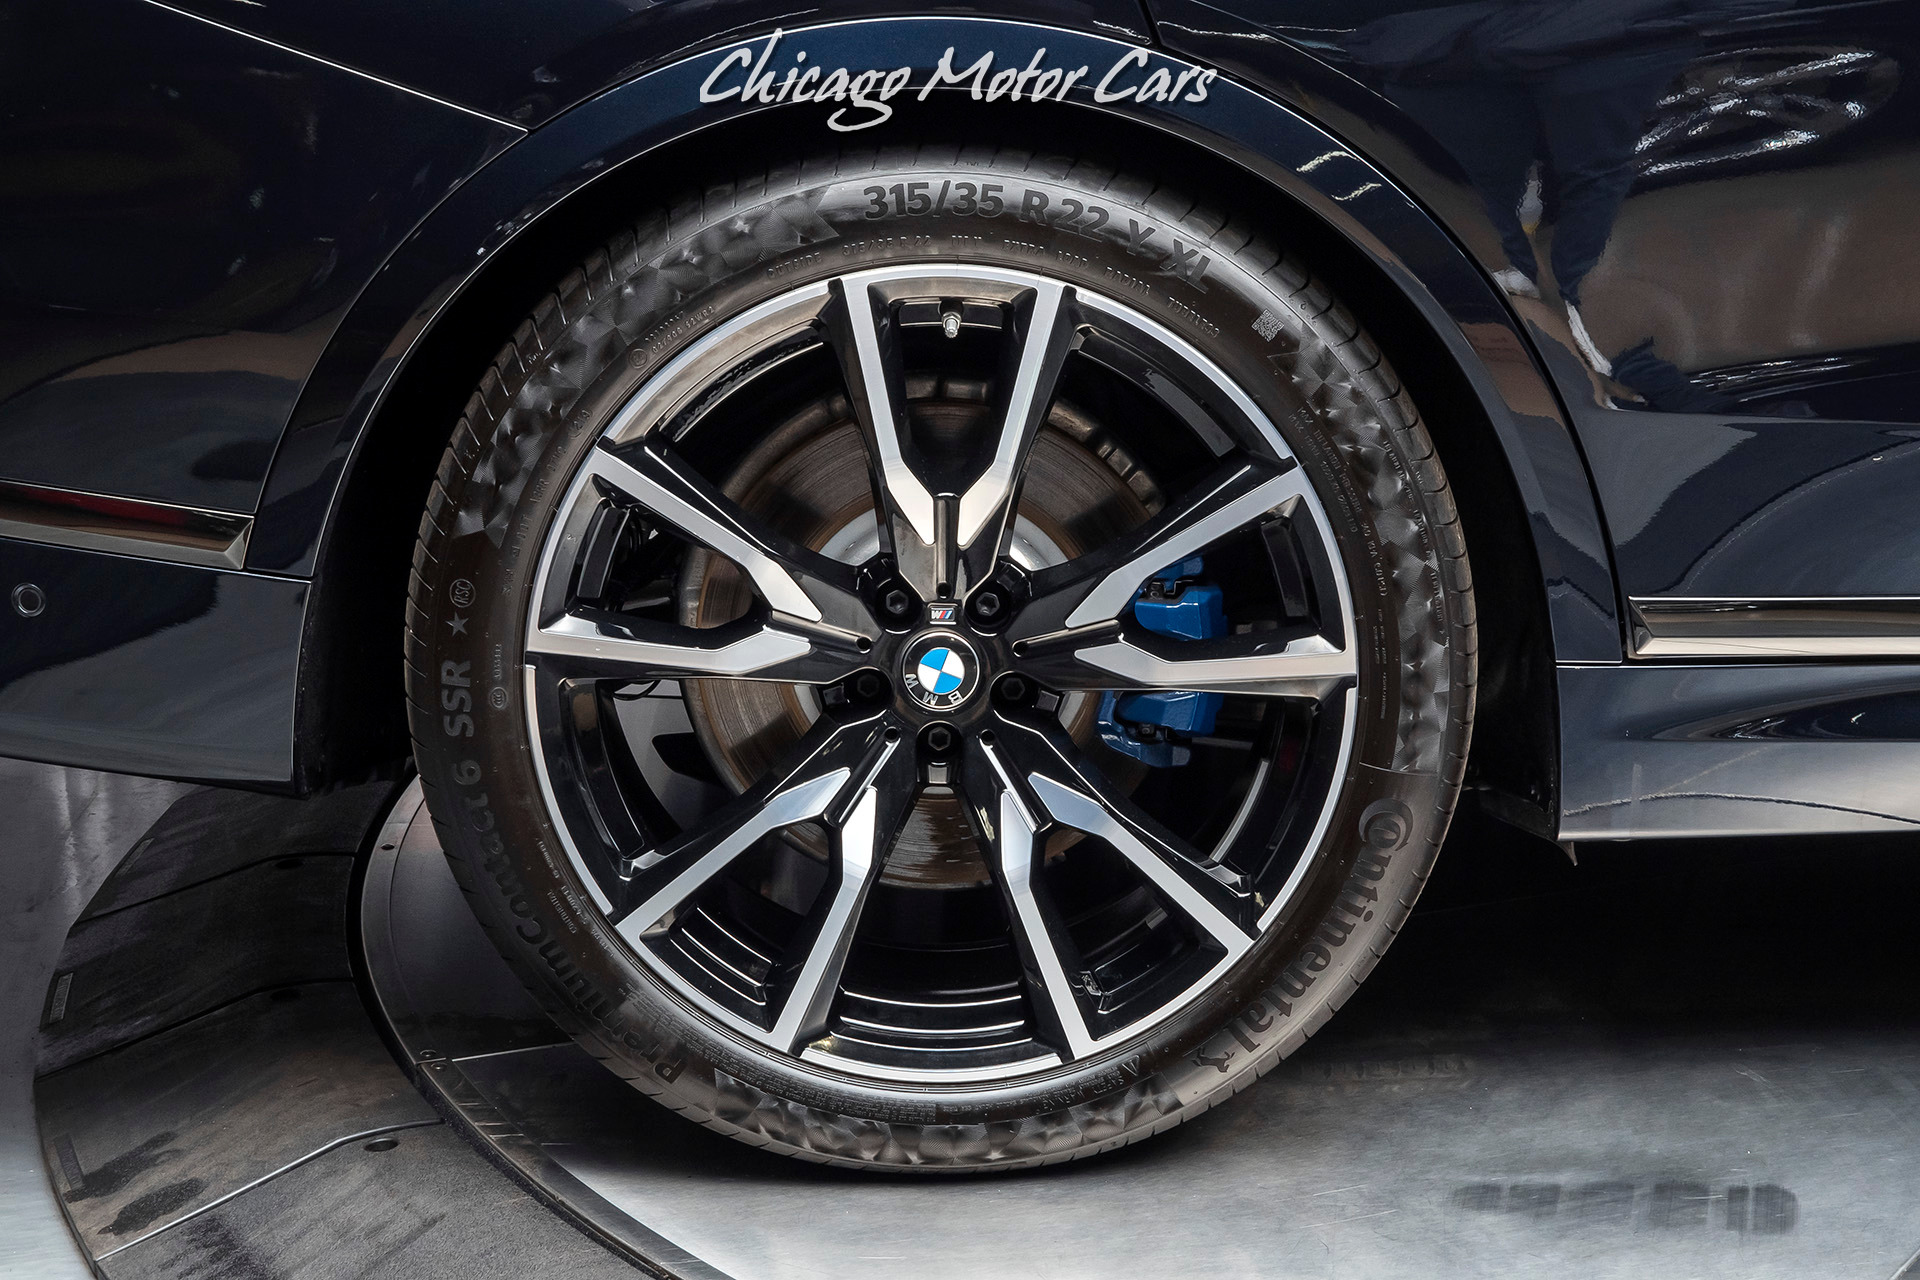 Used-2019-BMW-X7-xDrive50i-One-Owner-Only-1K-Miles-LOADED